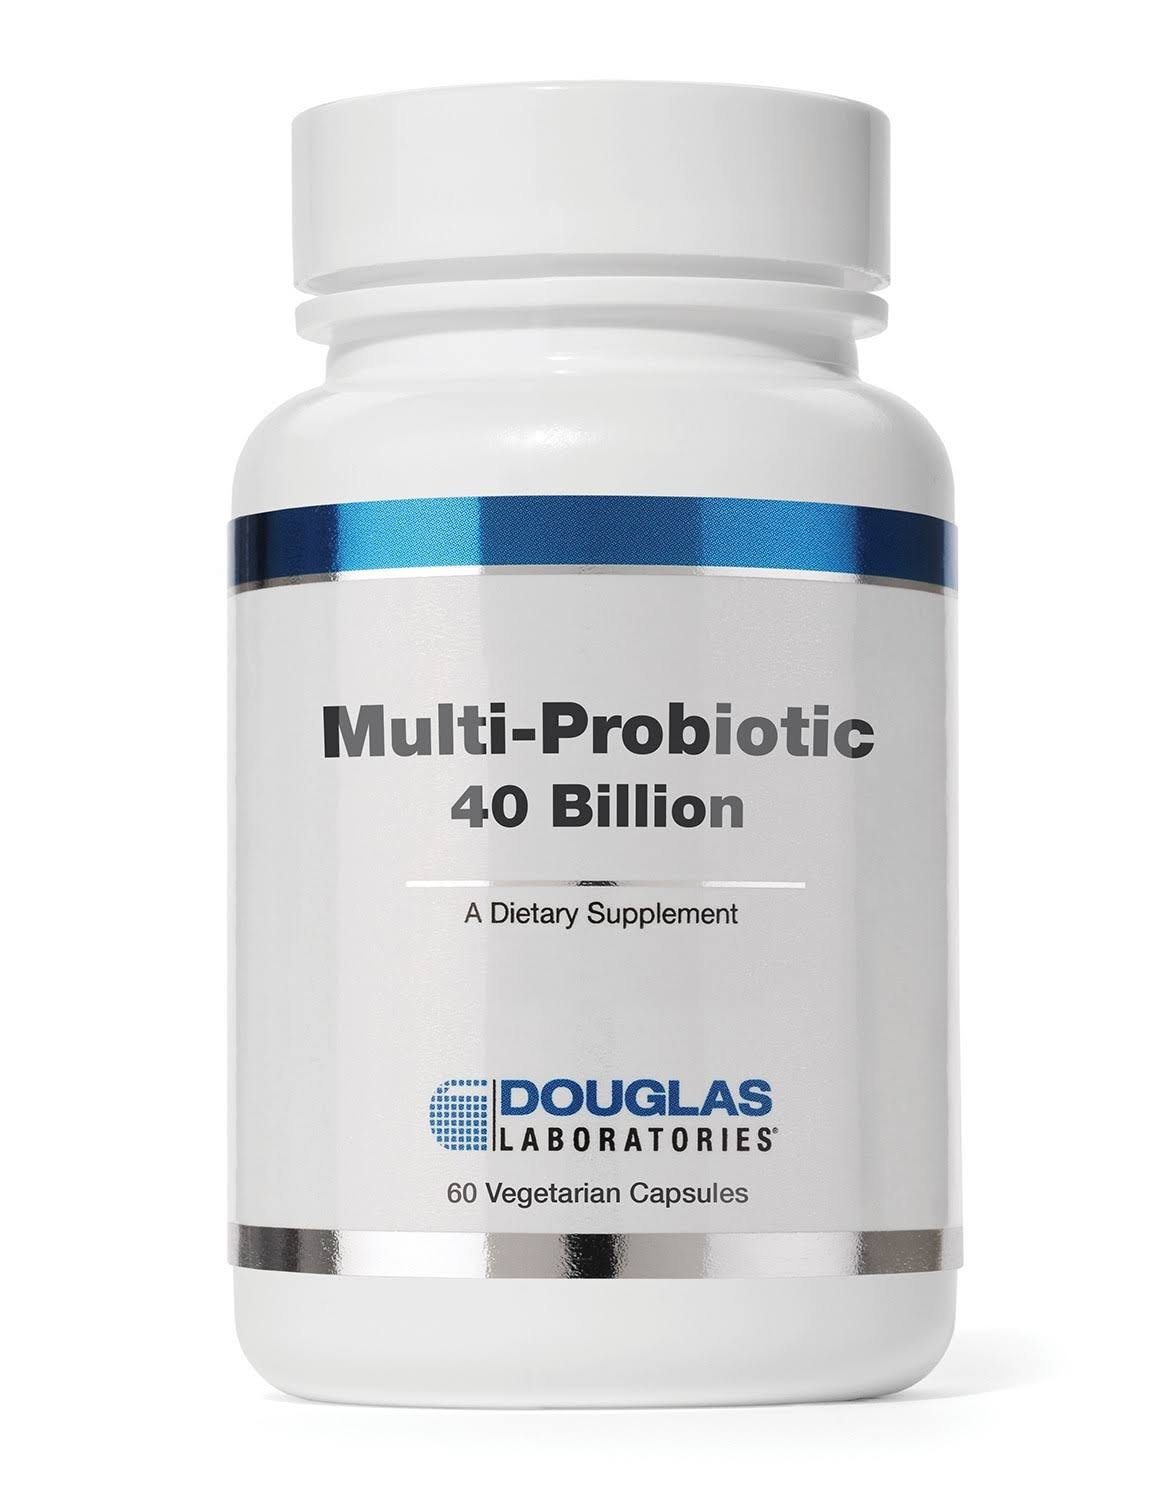 Douglas Laboratories Multi-Probiotic Supplement - 60 Capsules